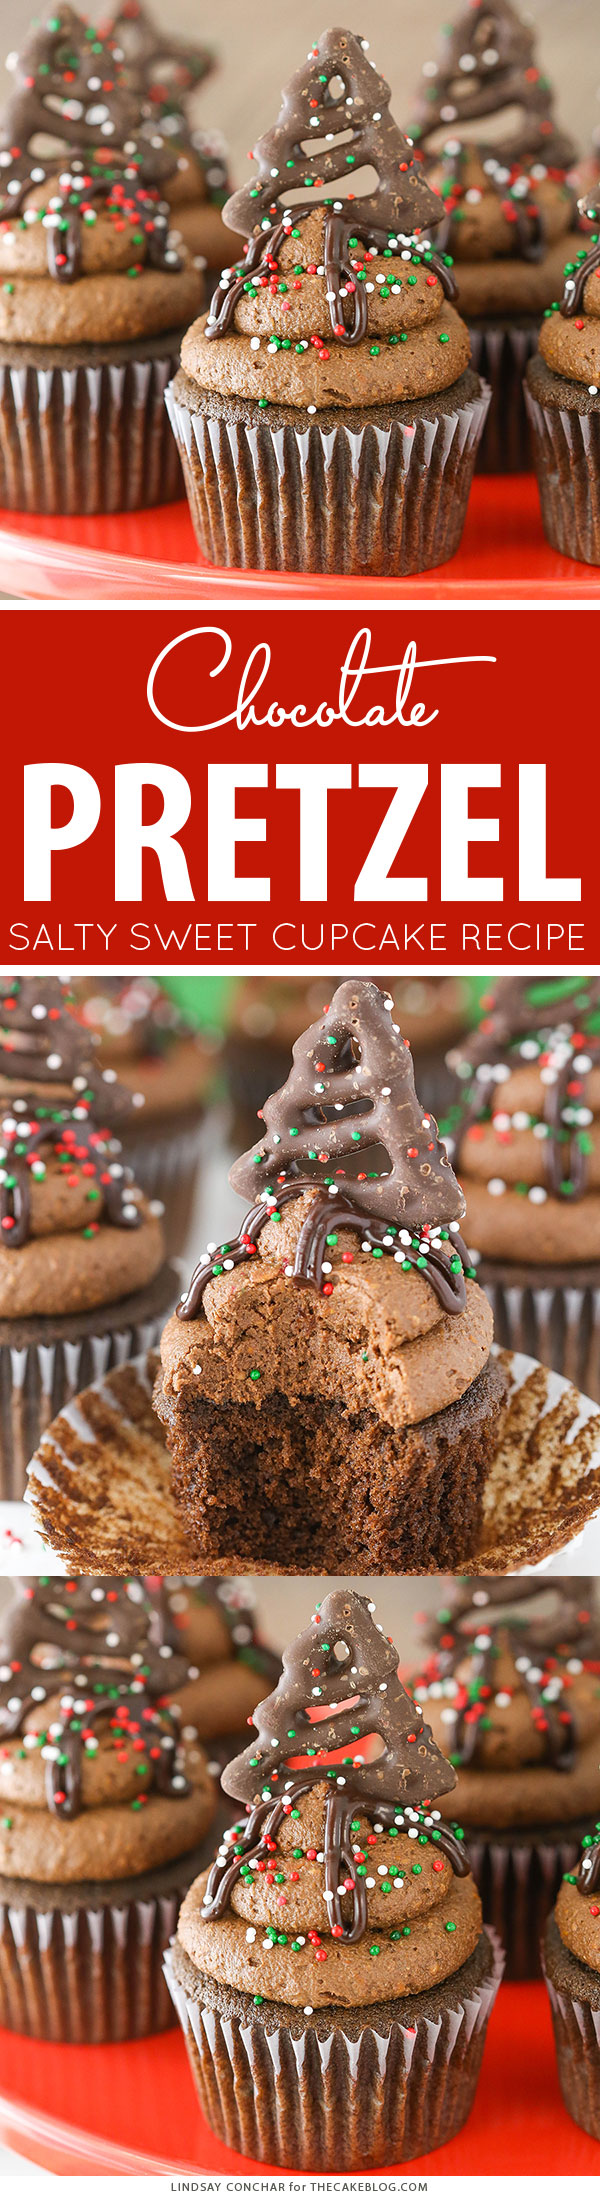 Chocolate Pretzel Cupcakes - salty sweet holiday cupcake | Lindsay Conchar for TheCakeBlog.com